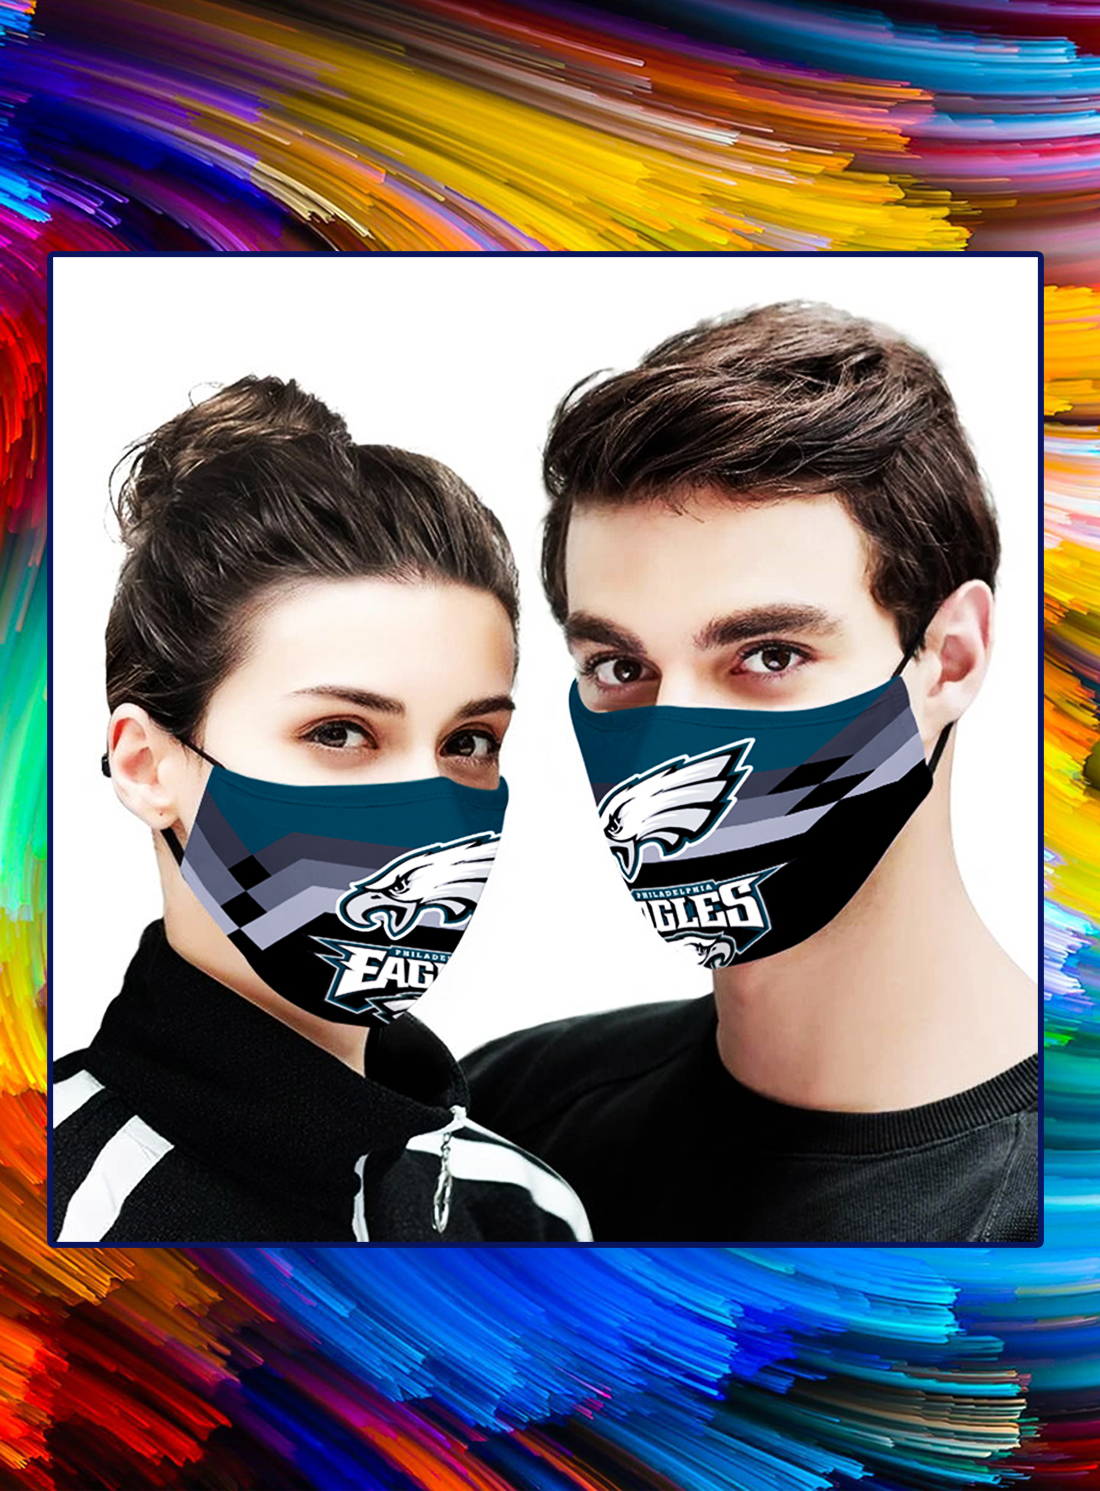 Philadelphia eagles face mask - Picture 1